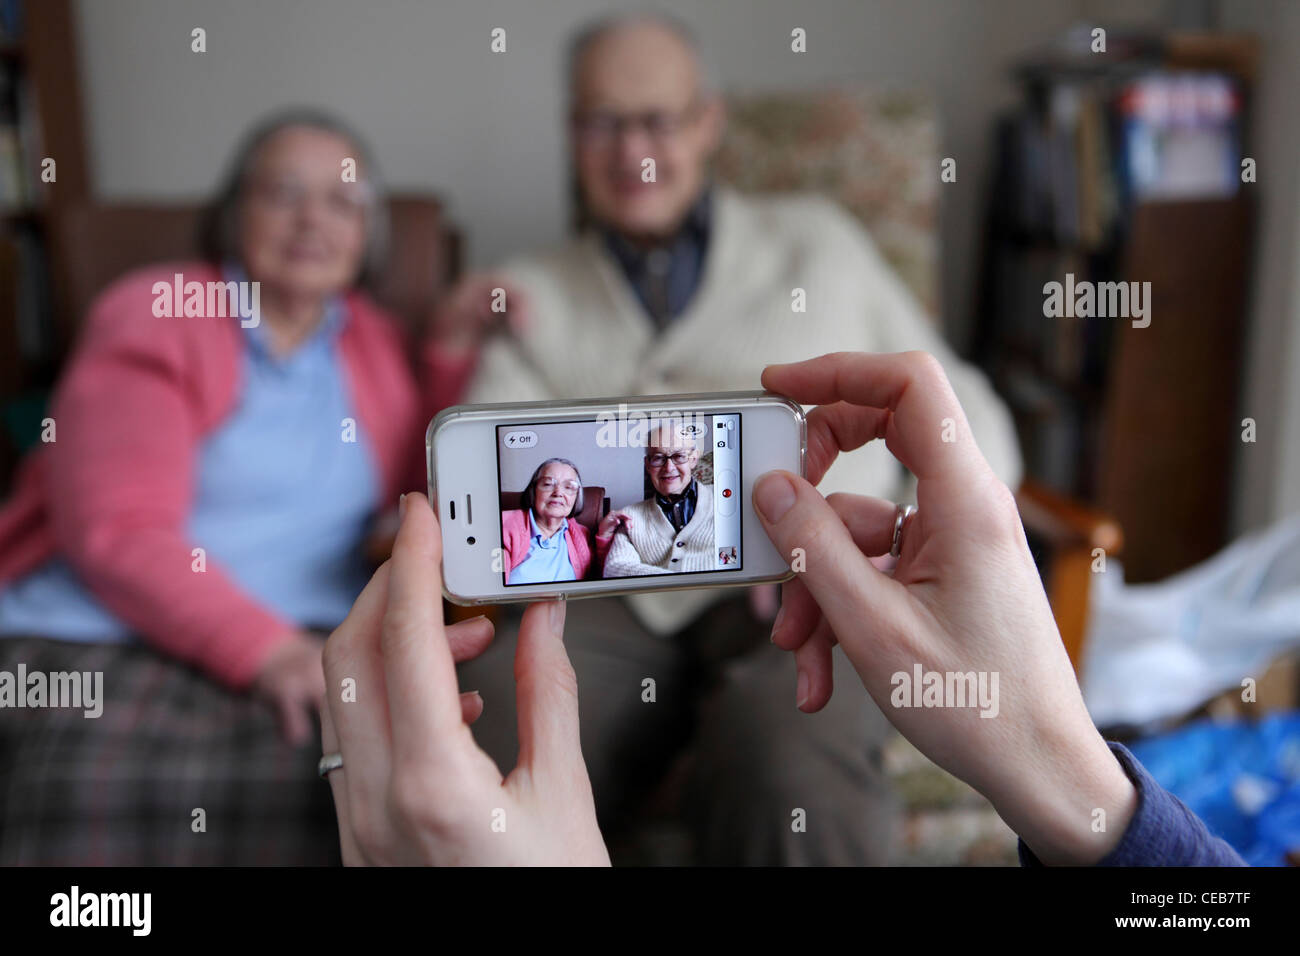 Using an iPhone 4S to take family photographs at home, different generations using intuitive touch screen technology, - Stock Image